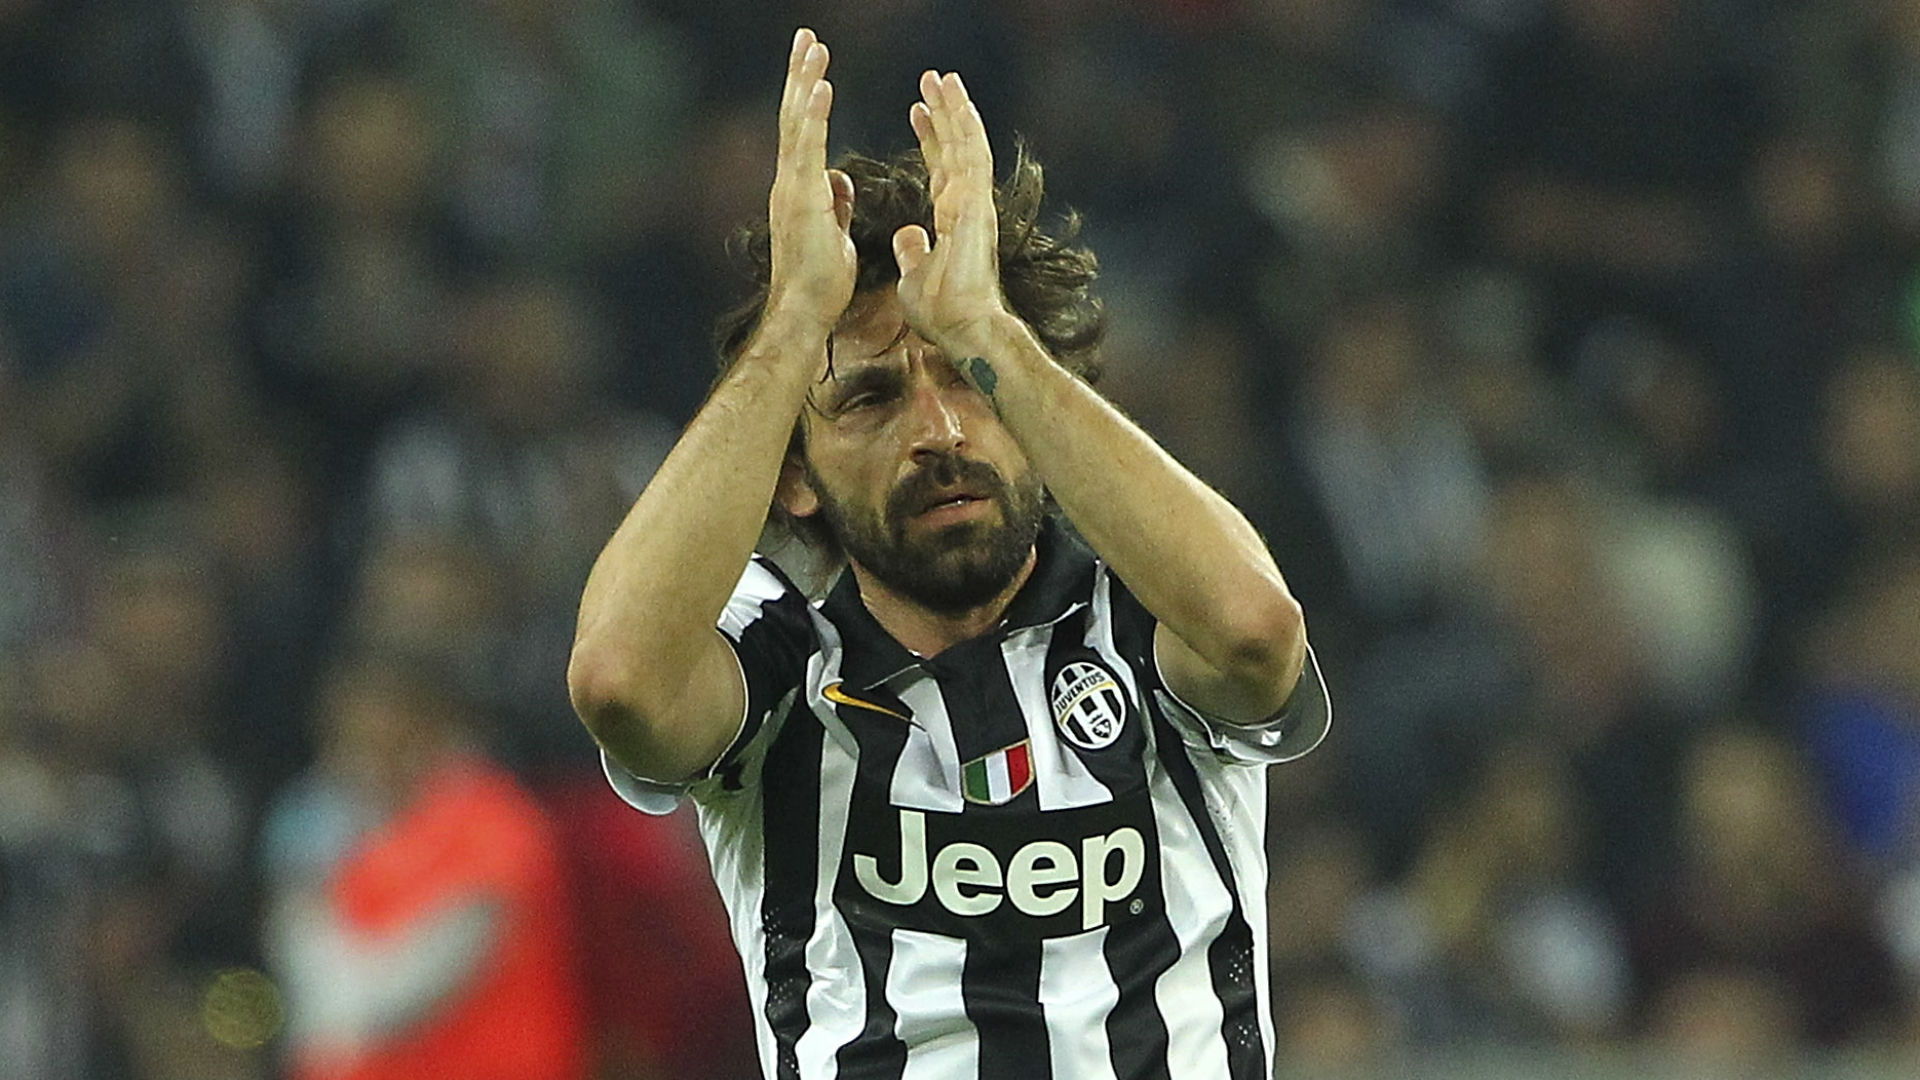 New Juve boss Pirlo is destined for greatness – Paratici